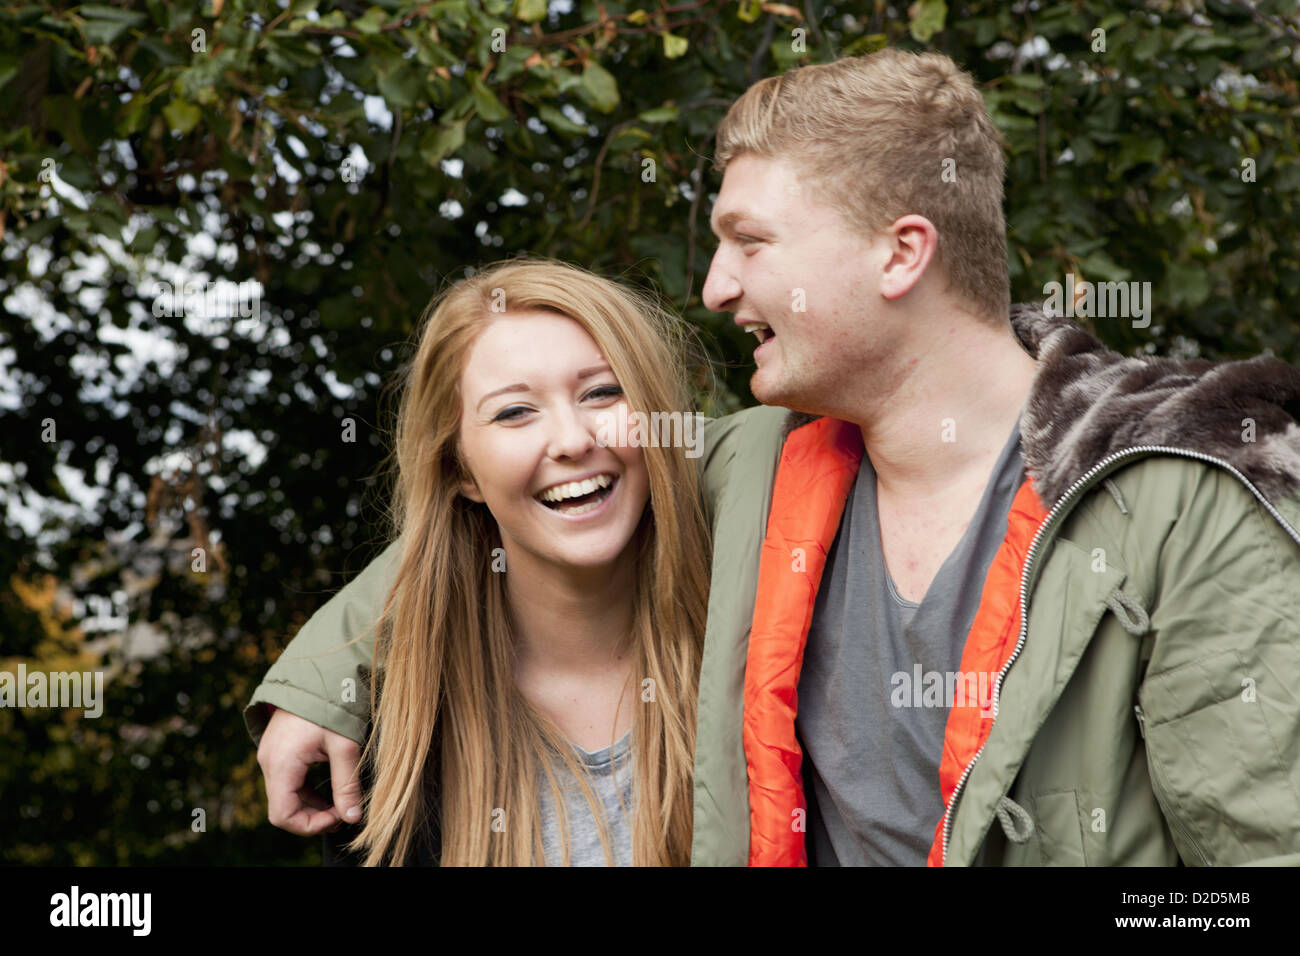 Couple standing together in park - Stock Image